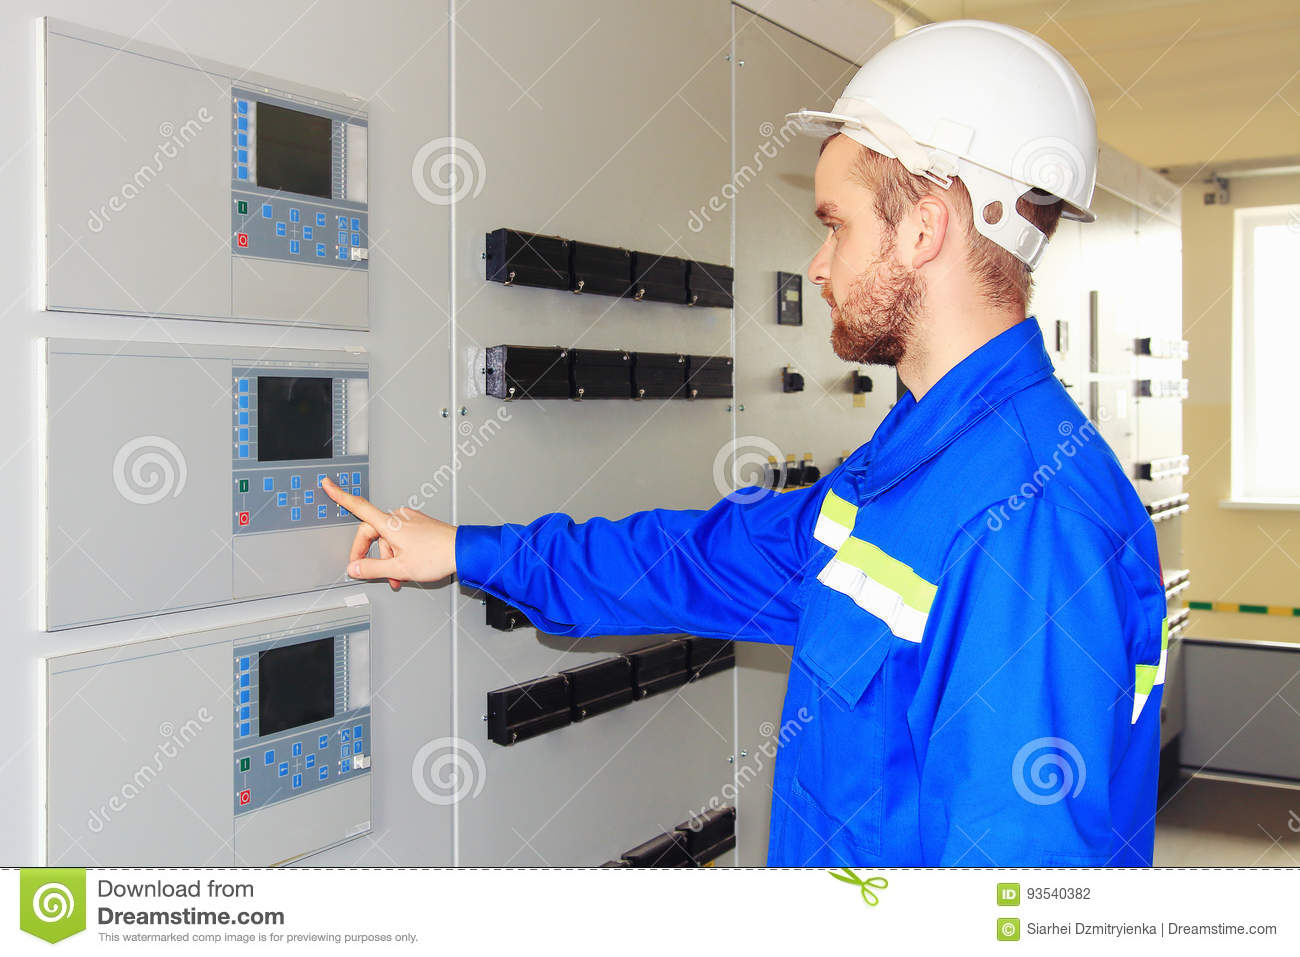 Electrical Engineer Equipment : Engineer technician electrical equipment testing